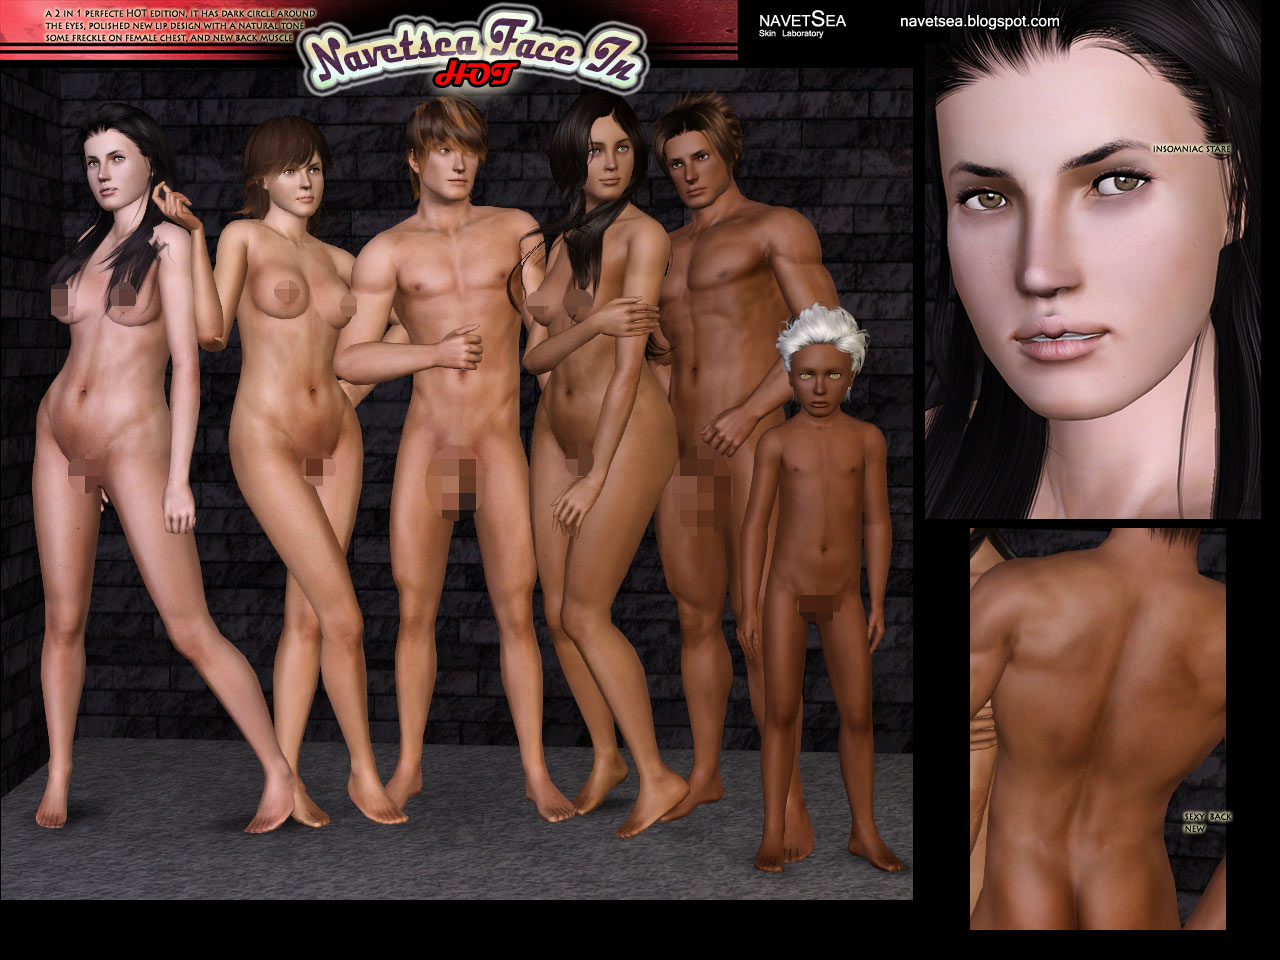 The sims 4 nudes hairy nsfw download